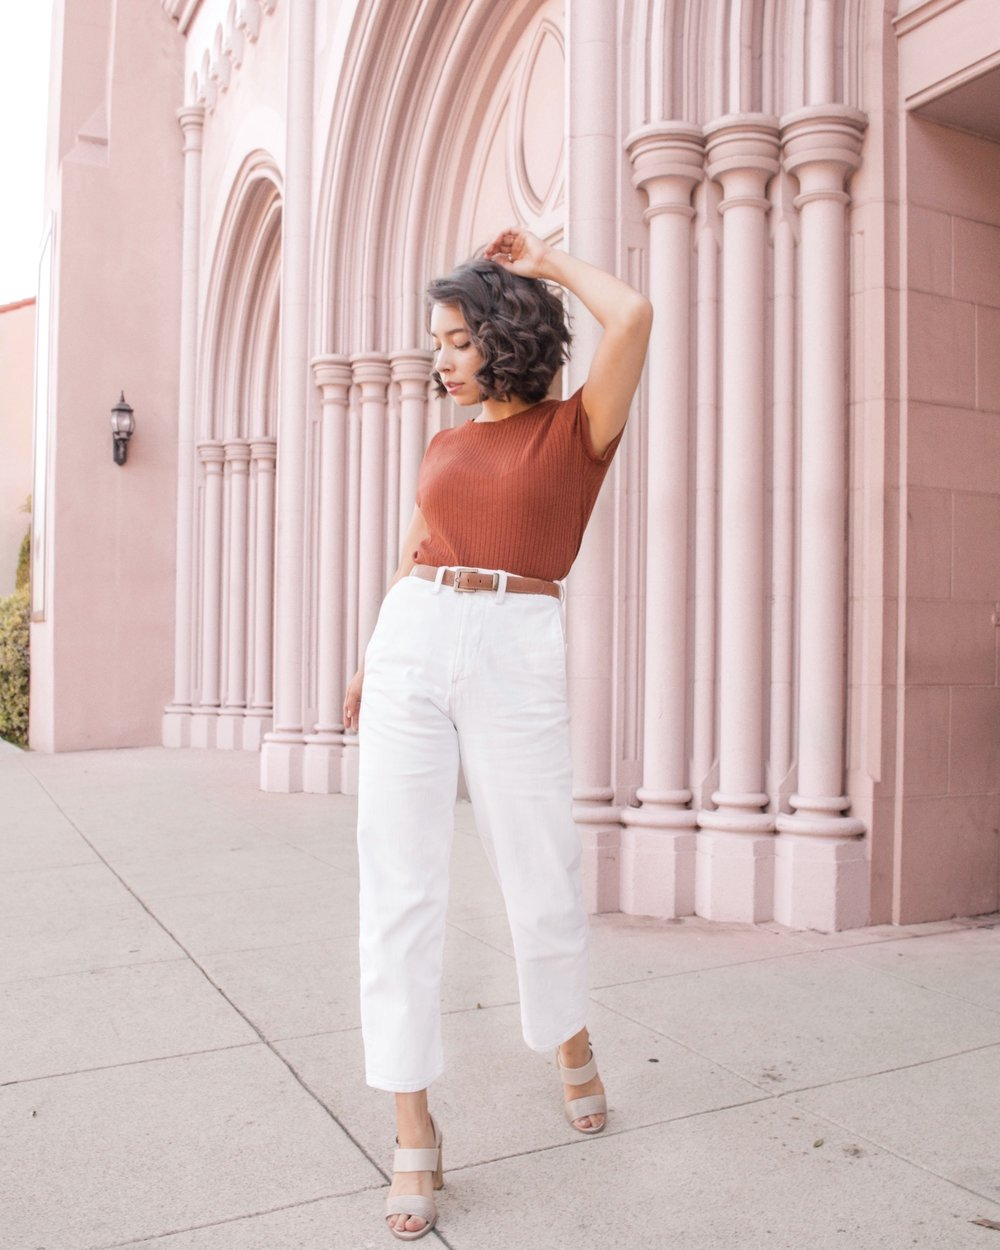 White pants with rust red shirt // A Week Of Self-Expressive Outfits With Aja Duran From Aja With Love on The Good Trade